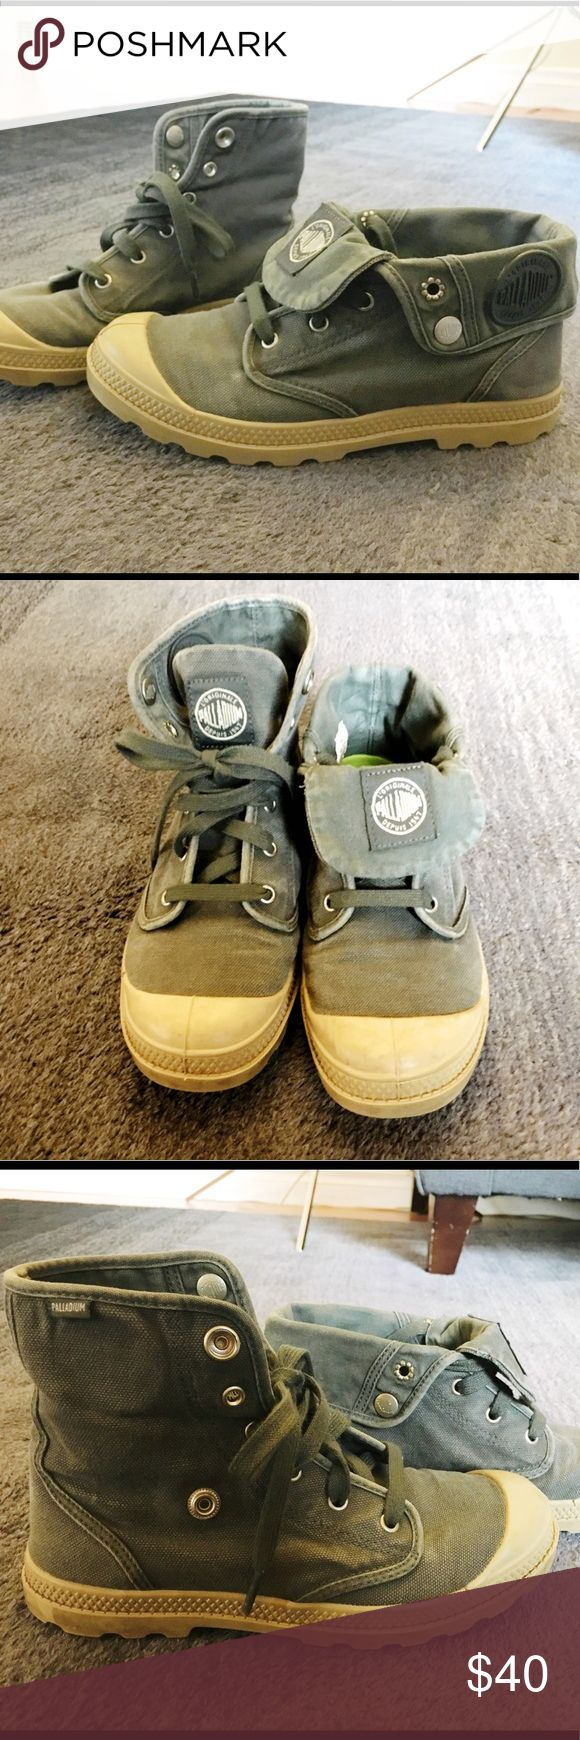 Palladium baggy shoes In good condition. You can wear these folded over or not. True to size. Palladium Shoes